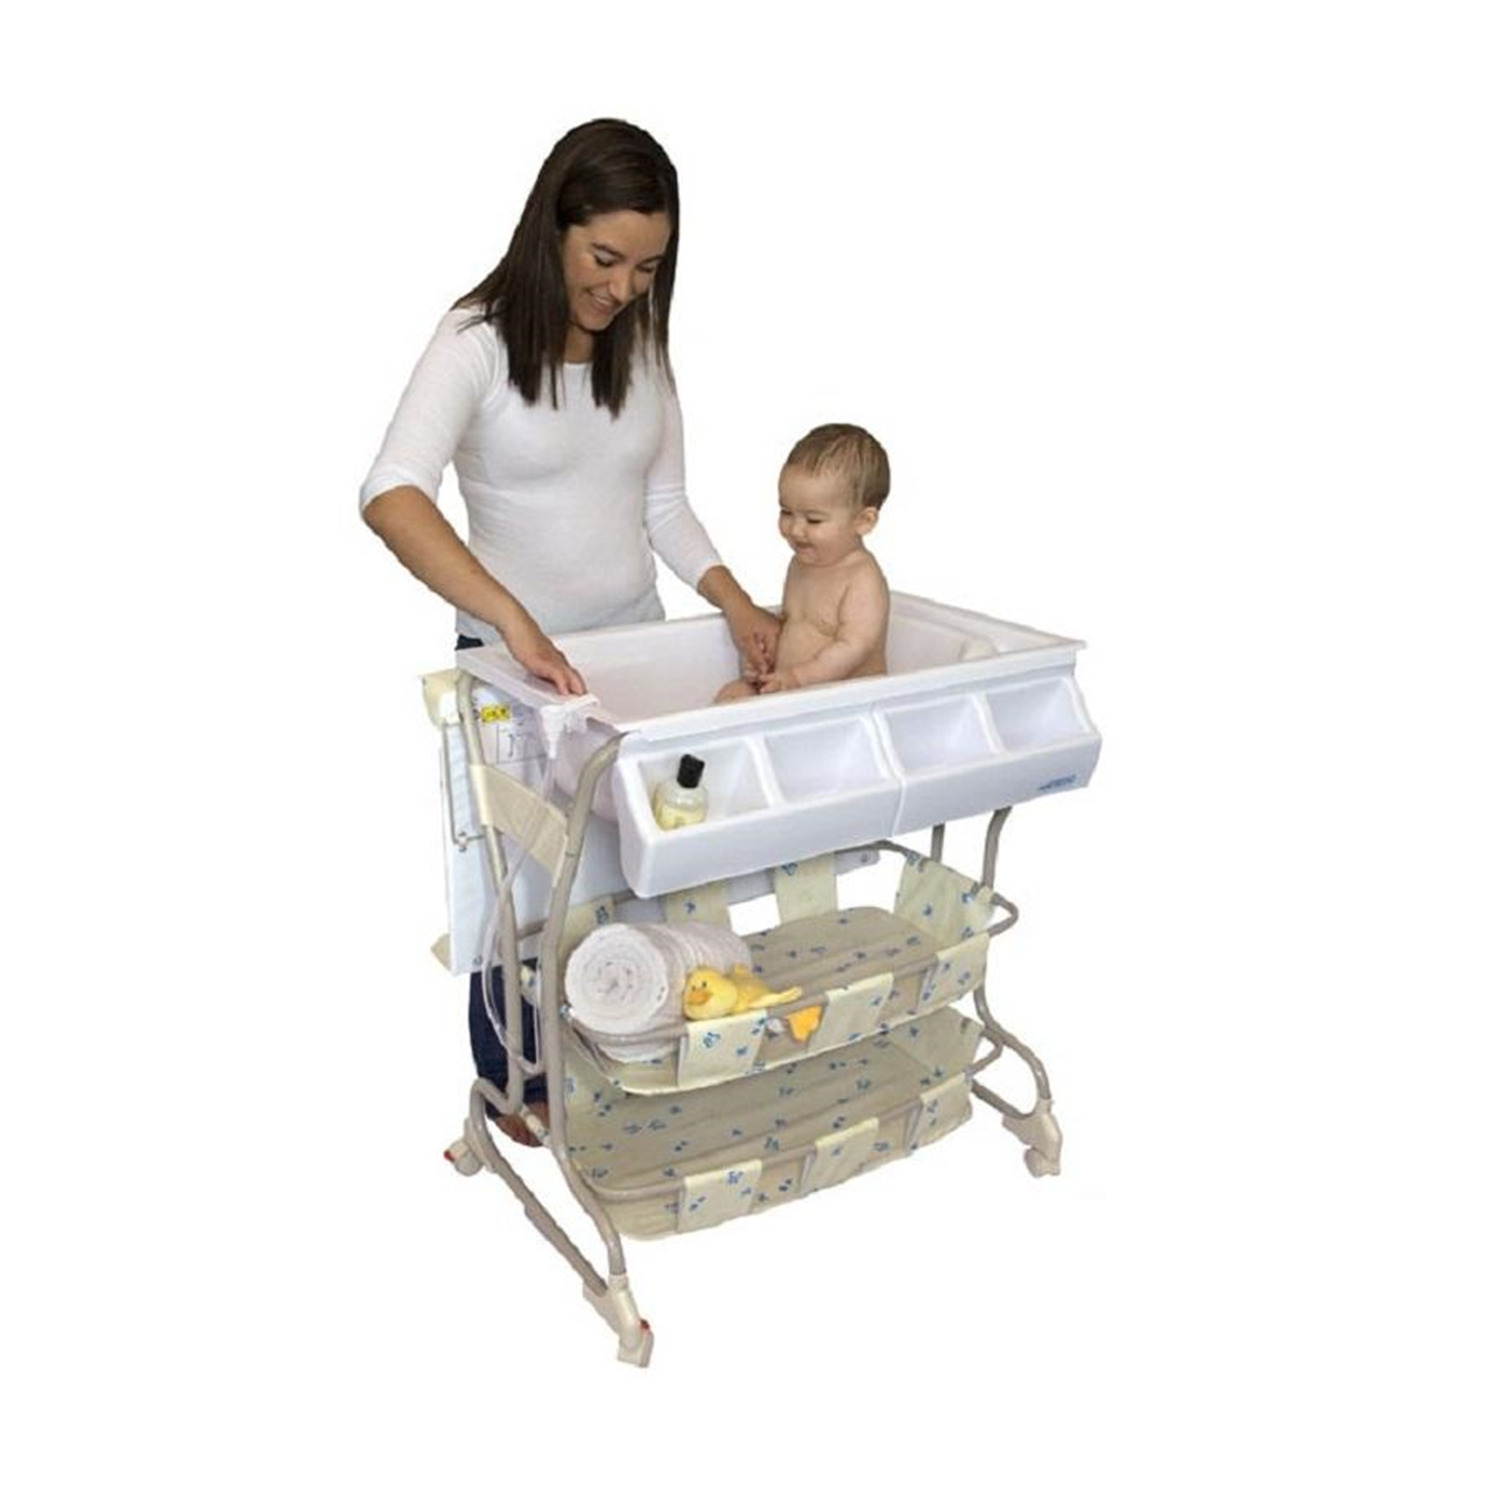 Baby Diego Bath Amp Changer Combo Deluxe By OJ Commerce 130